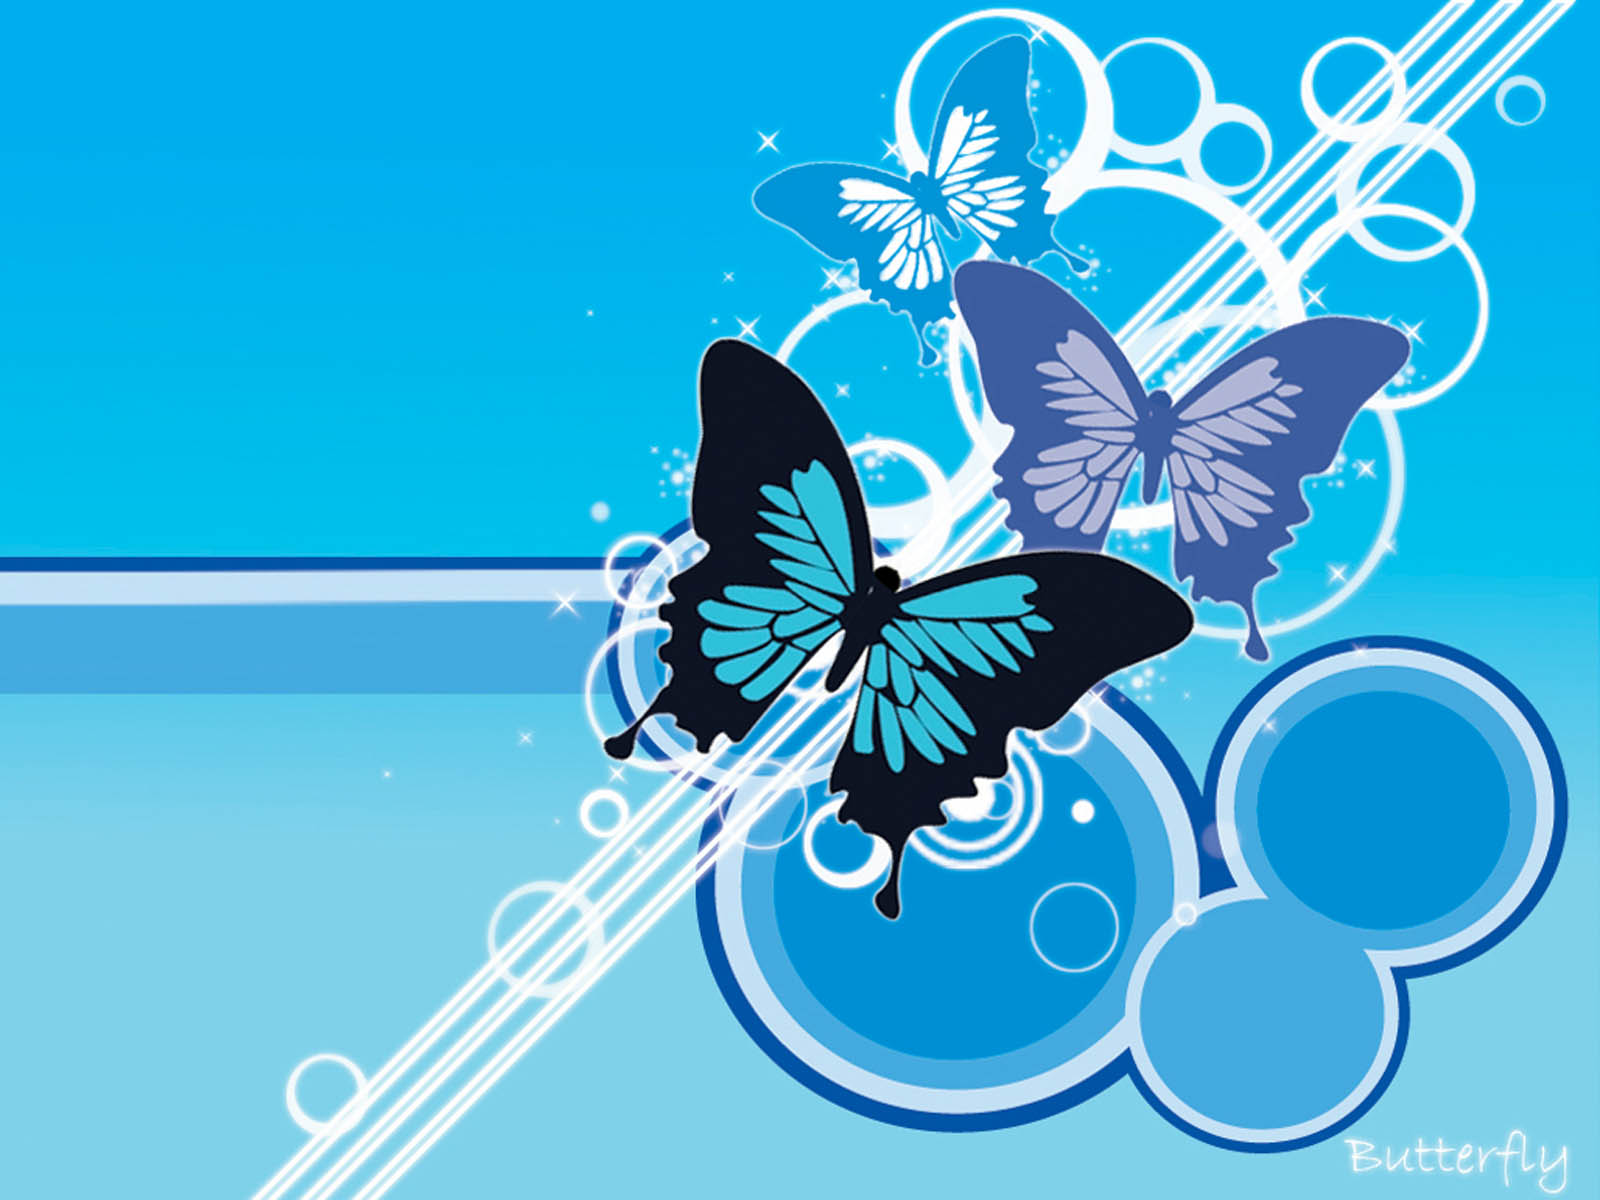 Wallpapers Vector Butterfly Wallpapers HD Wallpapers Download Free Images Wallpaper [1000image.com]